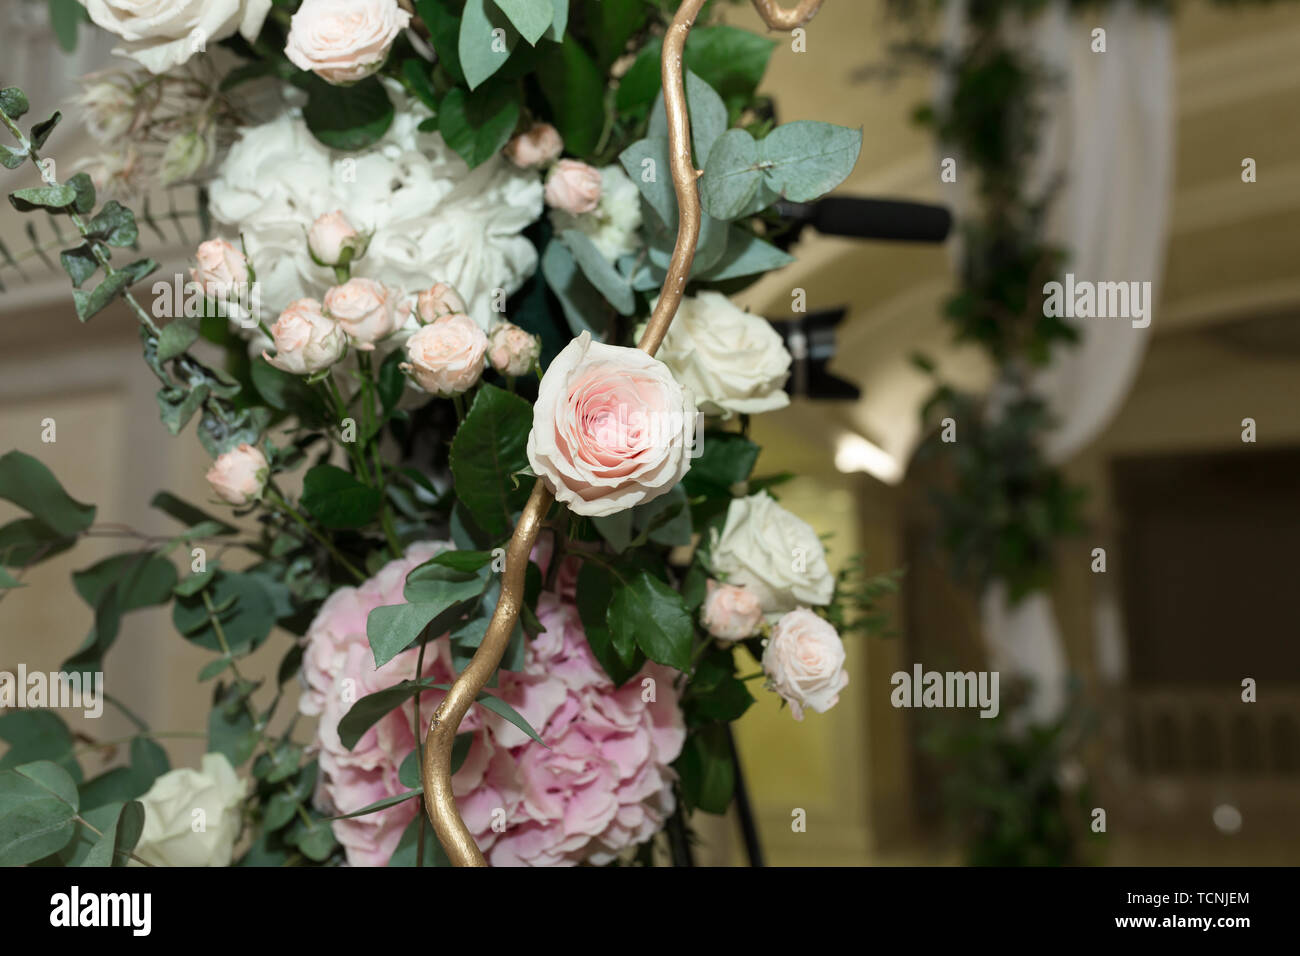 Wedding chuppah decorated with fresh flowers indoor banquet hall of wedding ceremony. Luxury wedding florist decoration artwork. - Stock Image